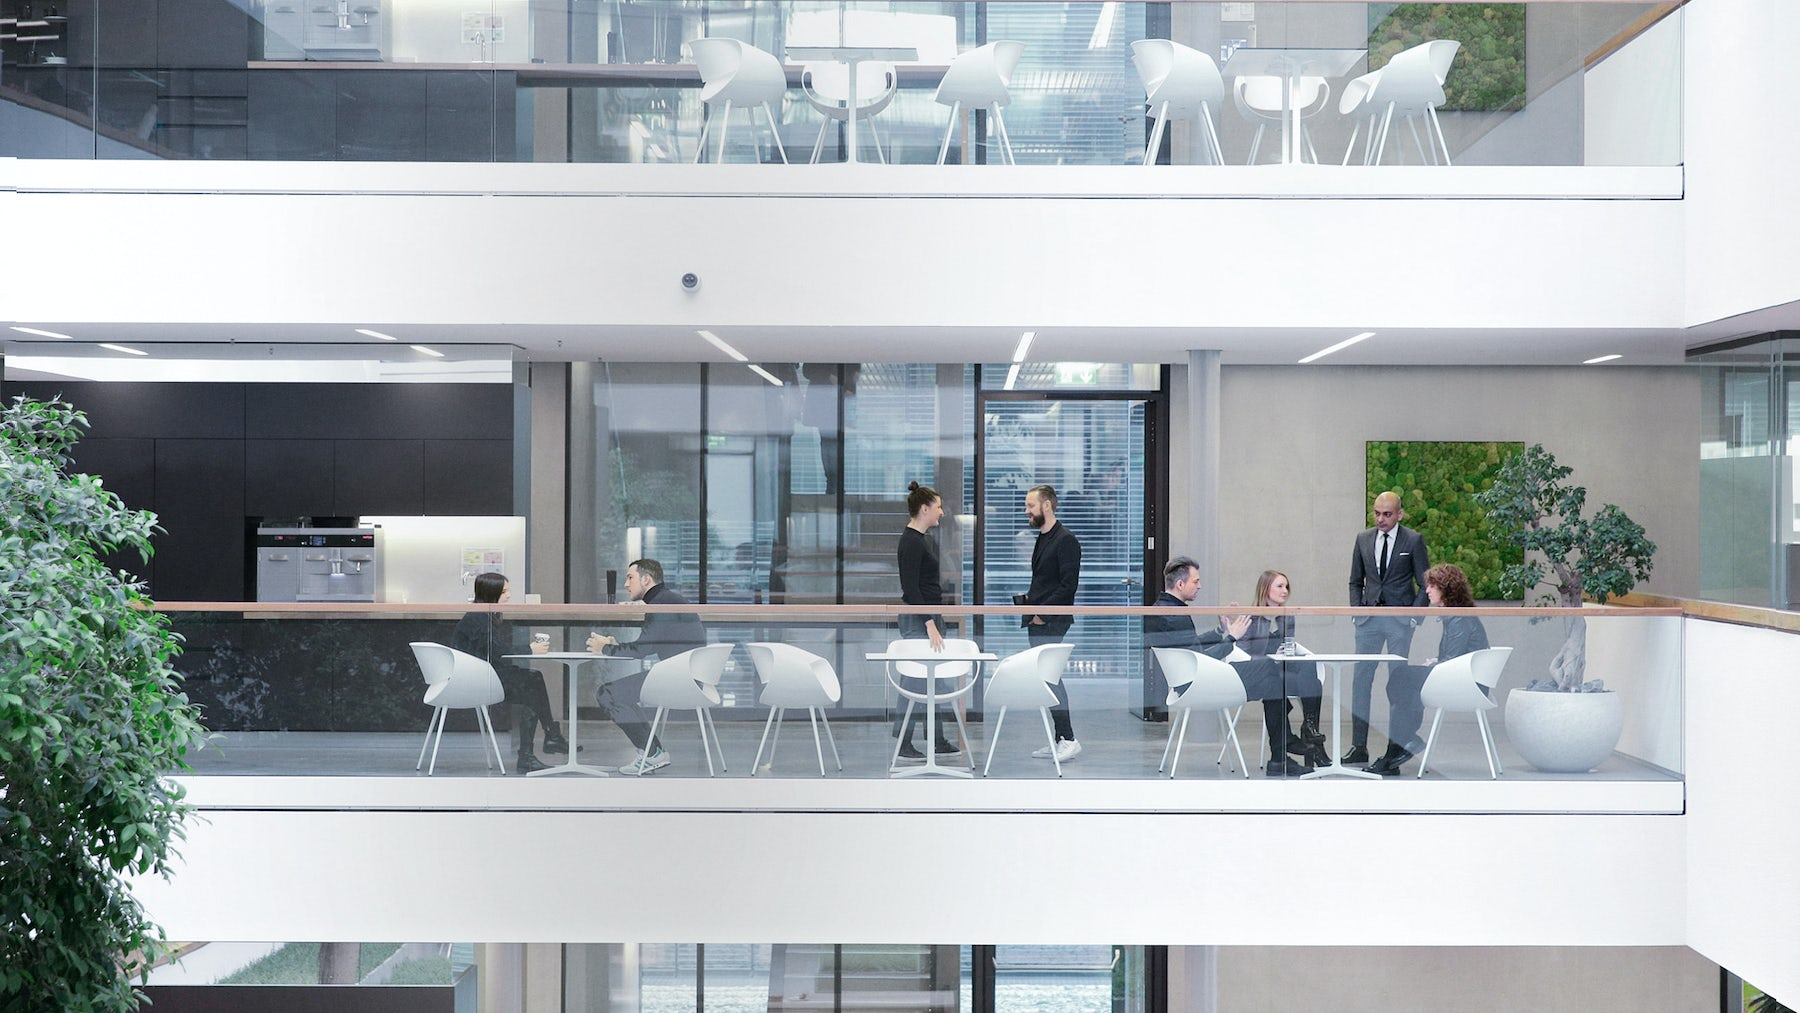 Hugo Boss offices | Source: Courtesy